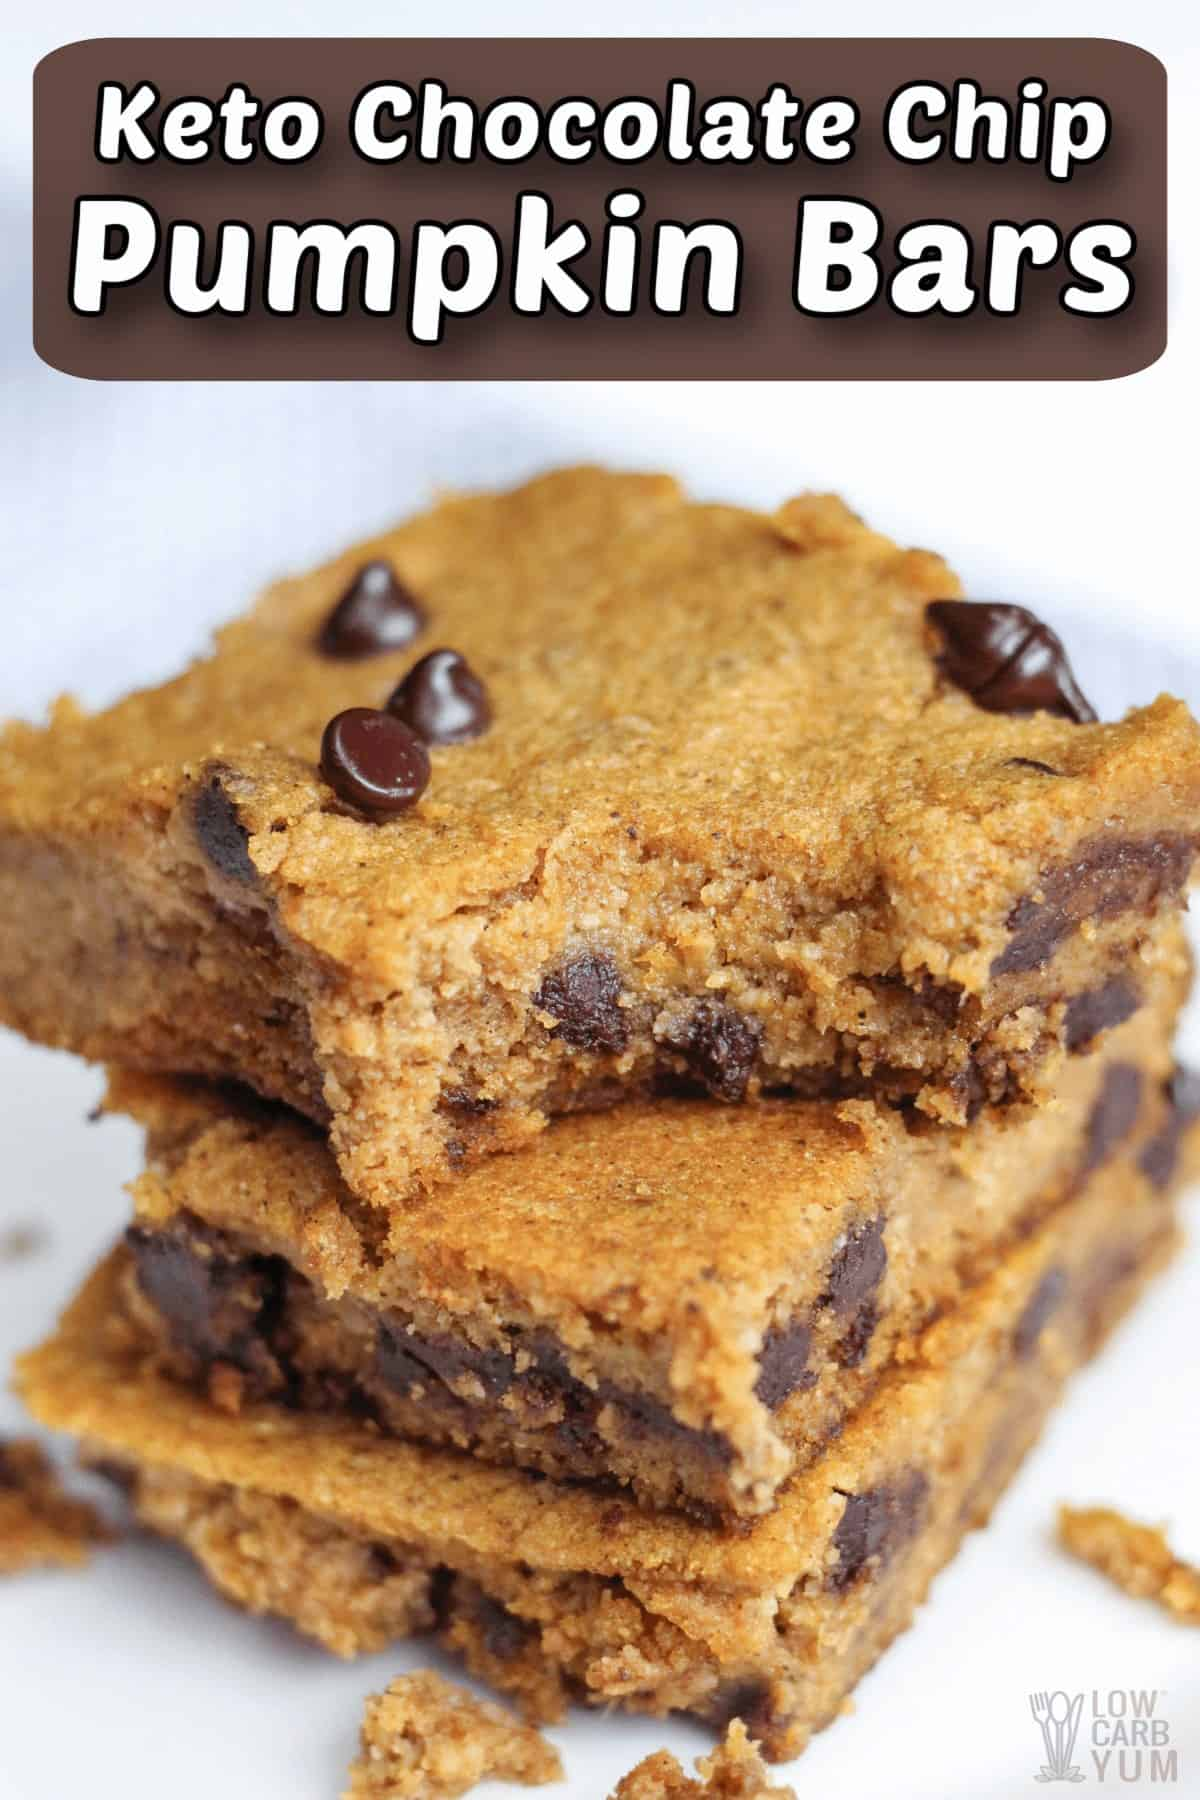 keto pumpkin bars with chocolate chips pintrest image